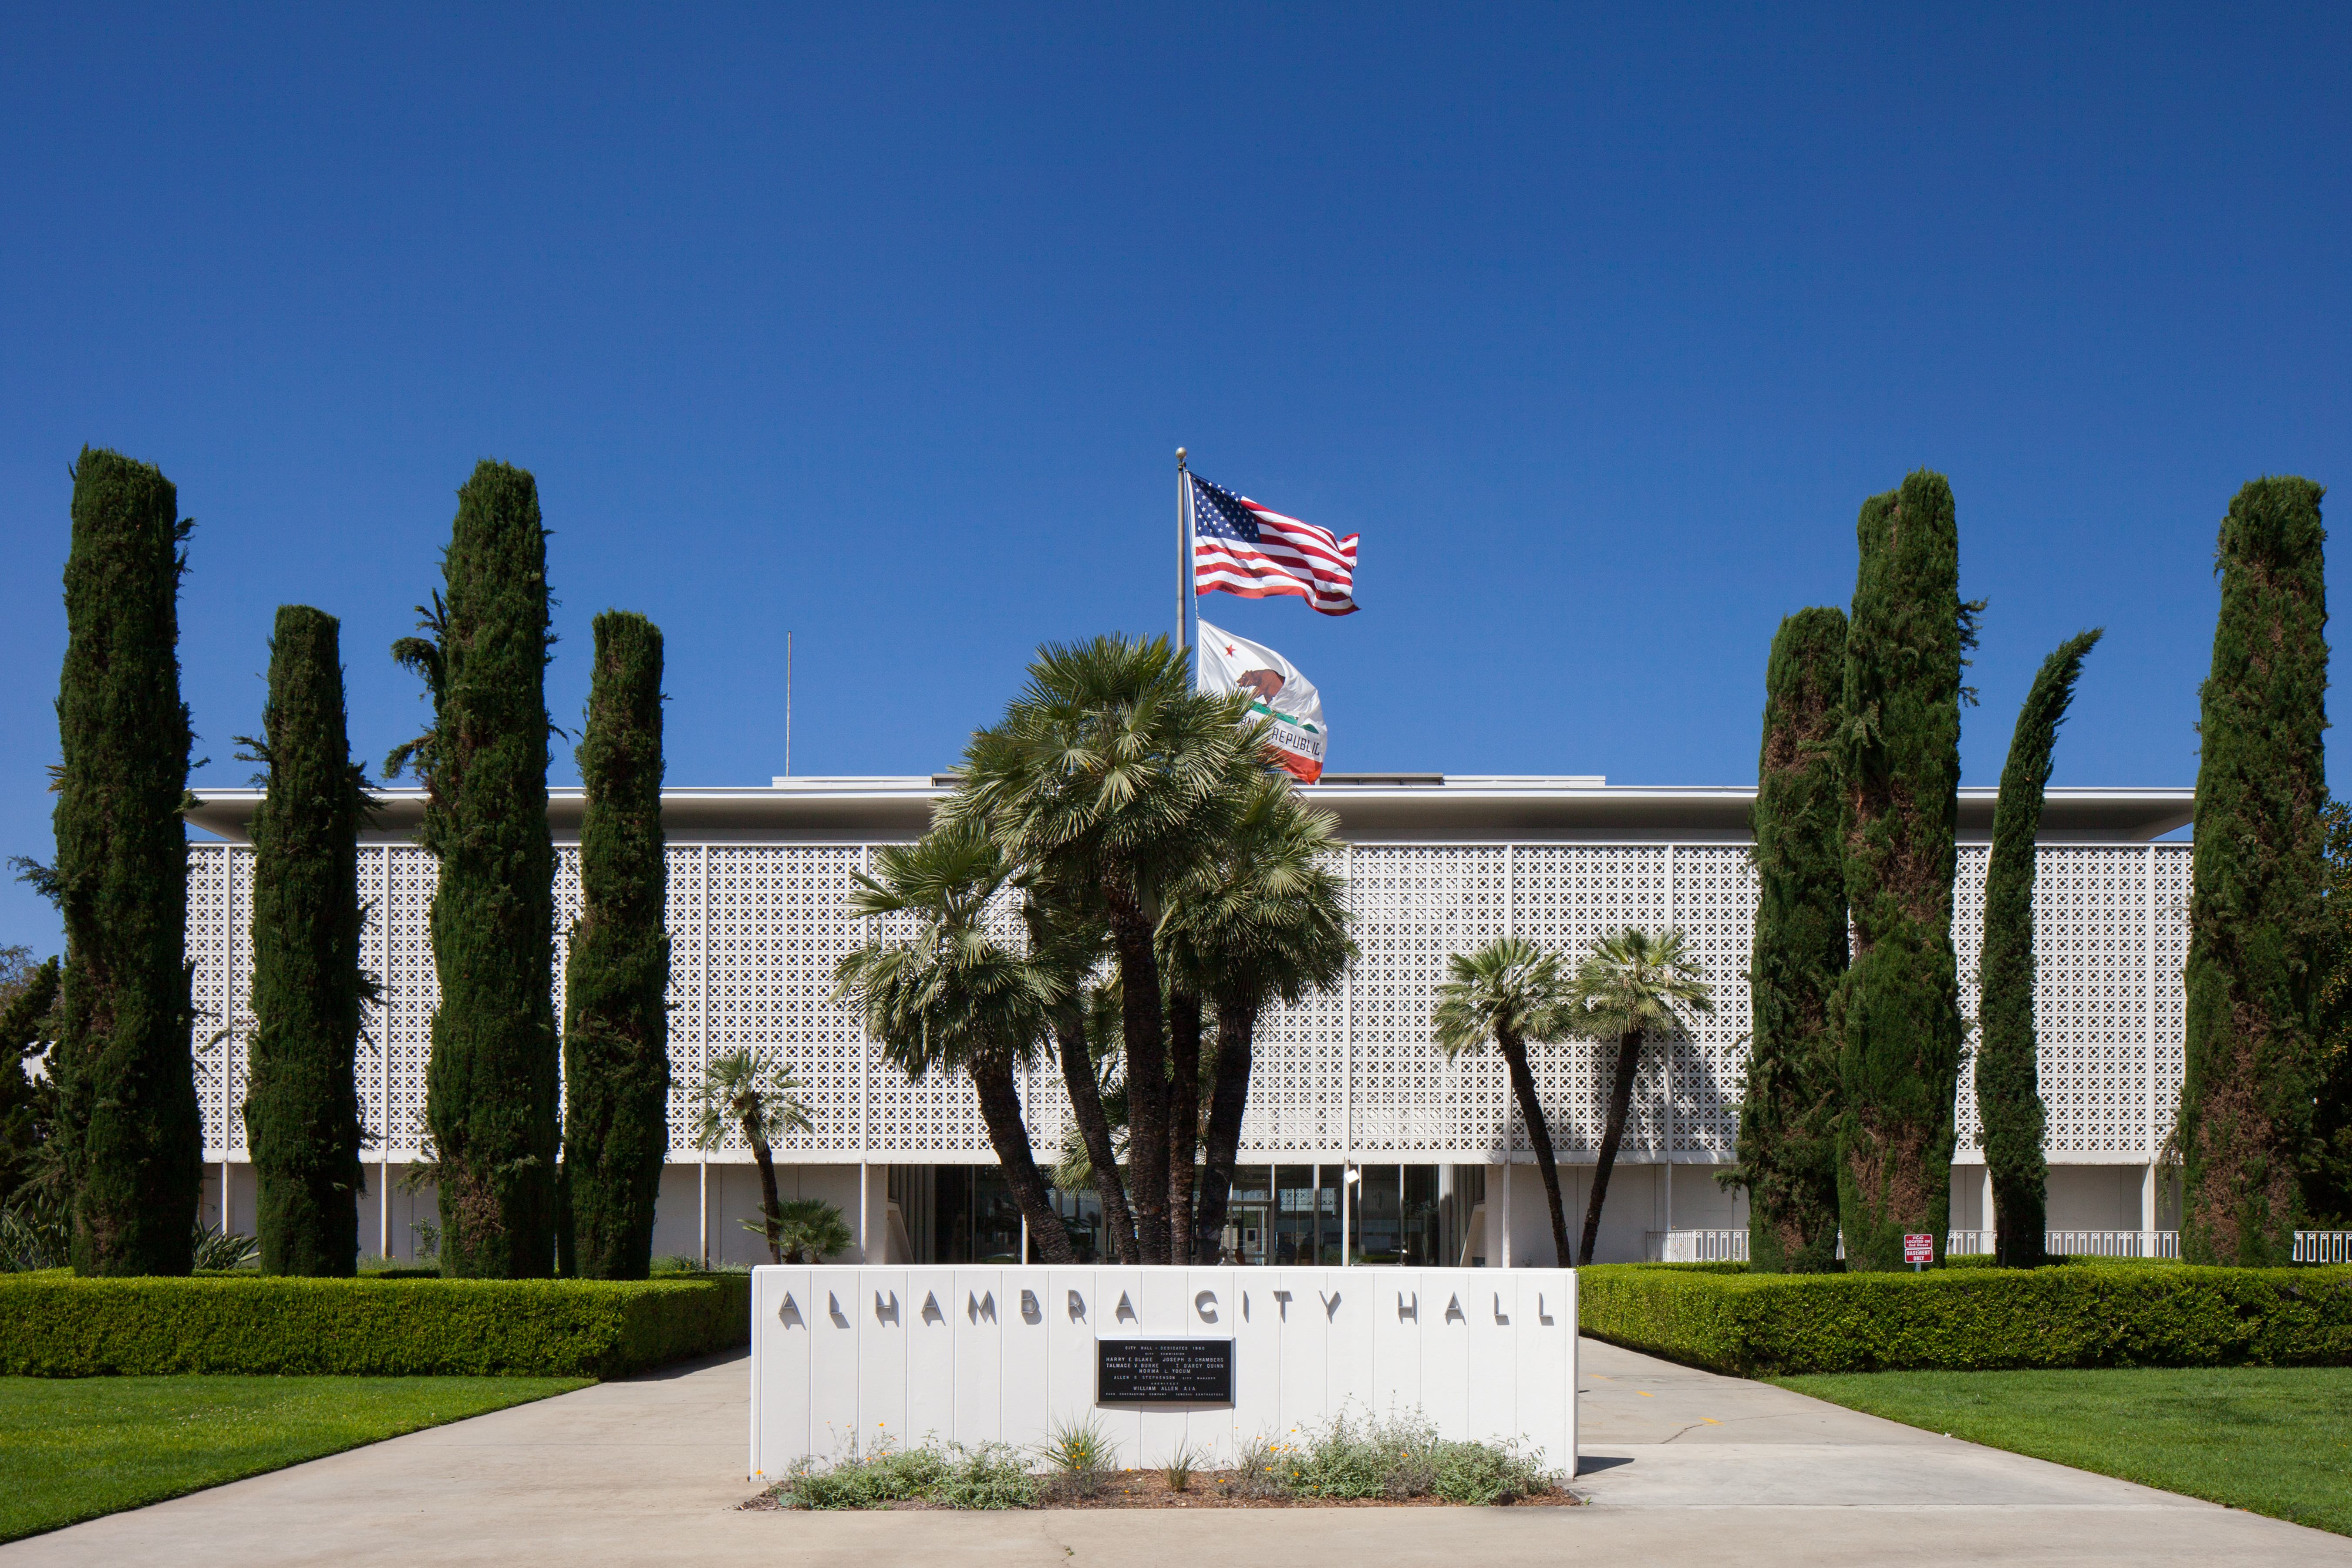 Photo of entrance to Alhambra City Hall